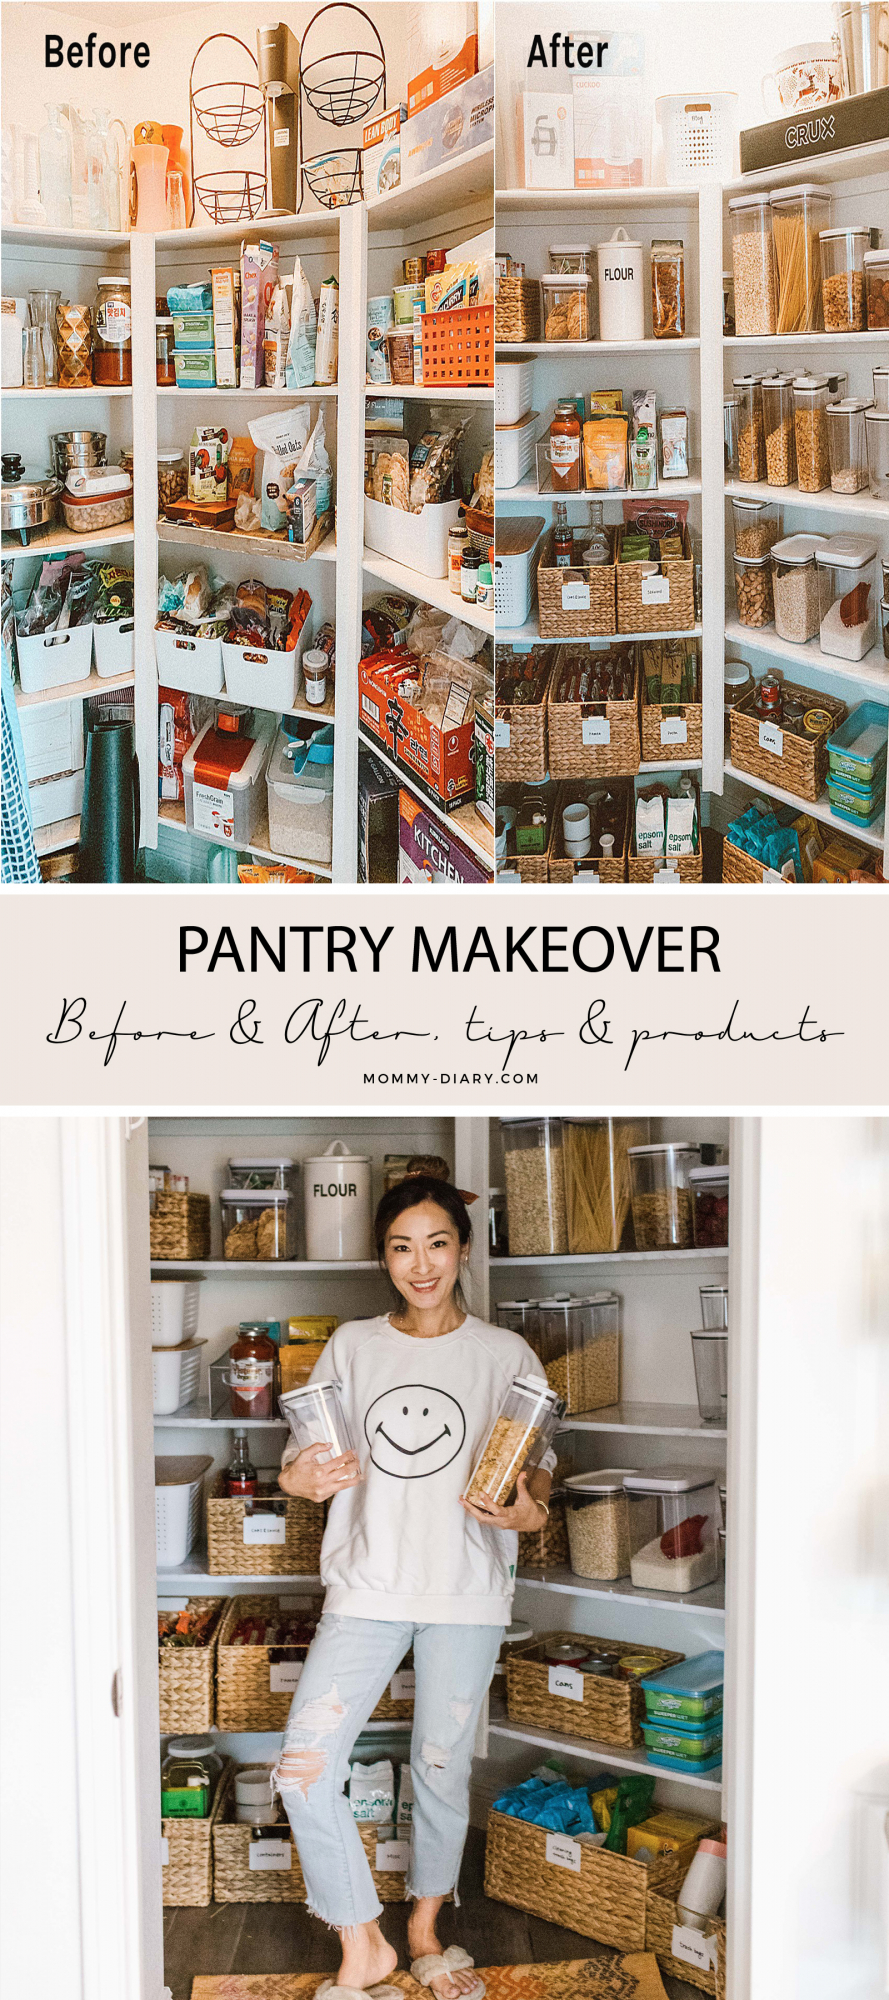 container-store-pantry-makeover-organization-tips